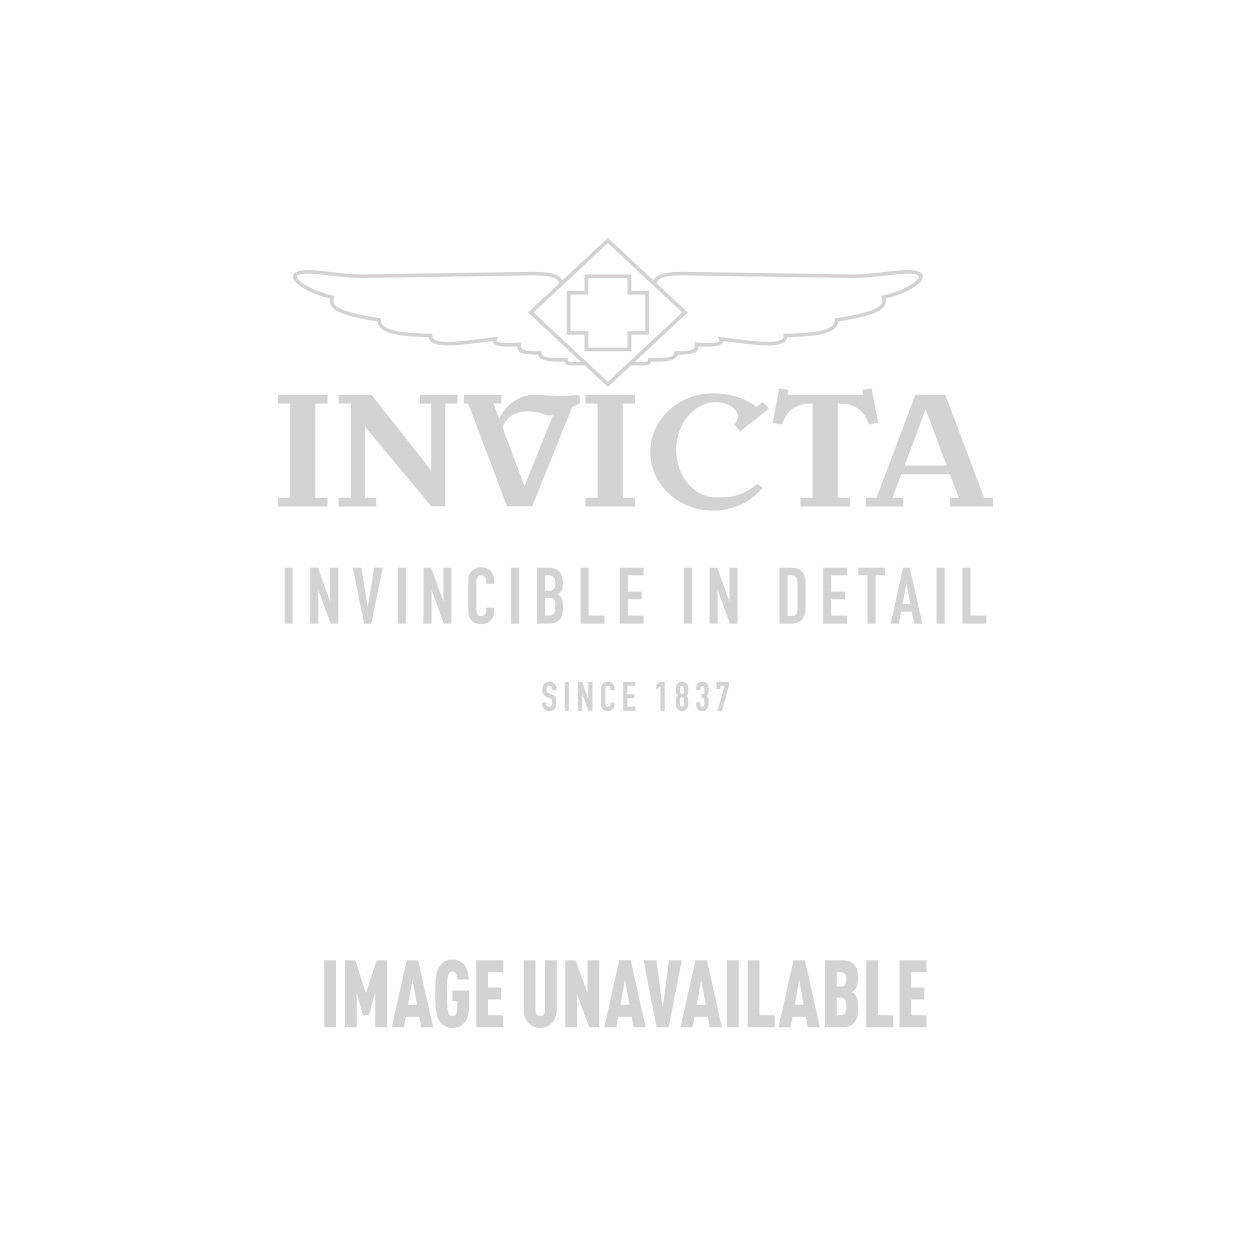 Invicta Angel Swiss Movement Quartz Watch - Gold, Stainless Steel case with Steel, Gold tone Stainless Steel band - Model 14376